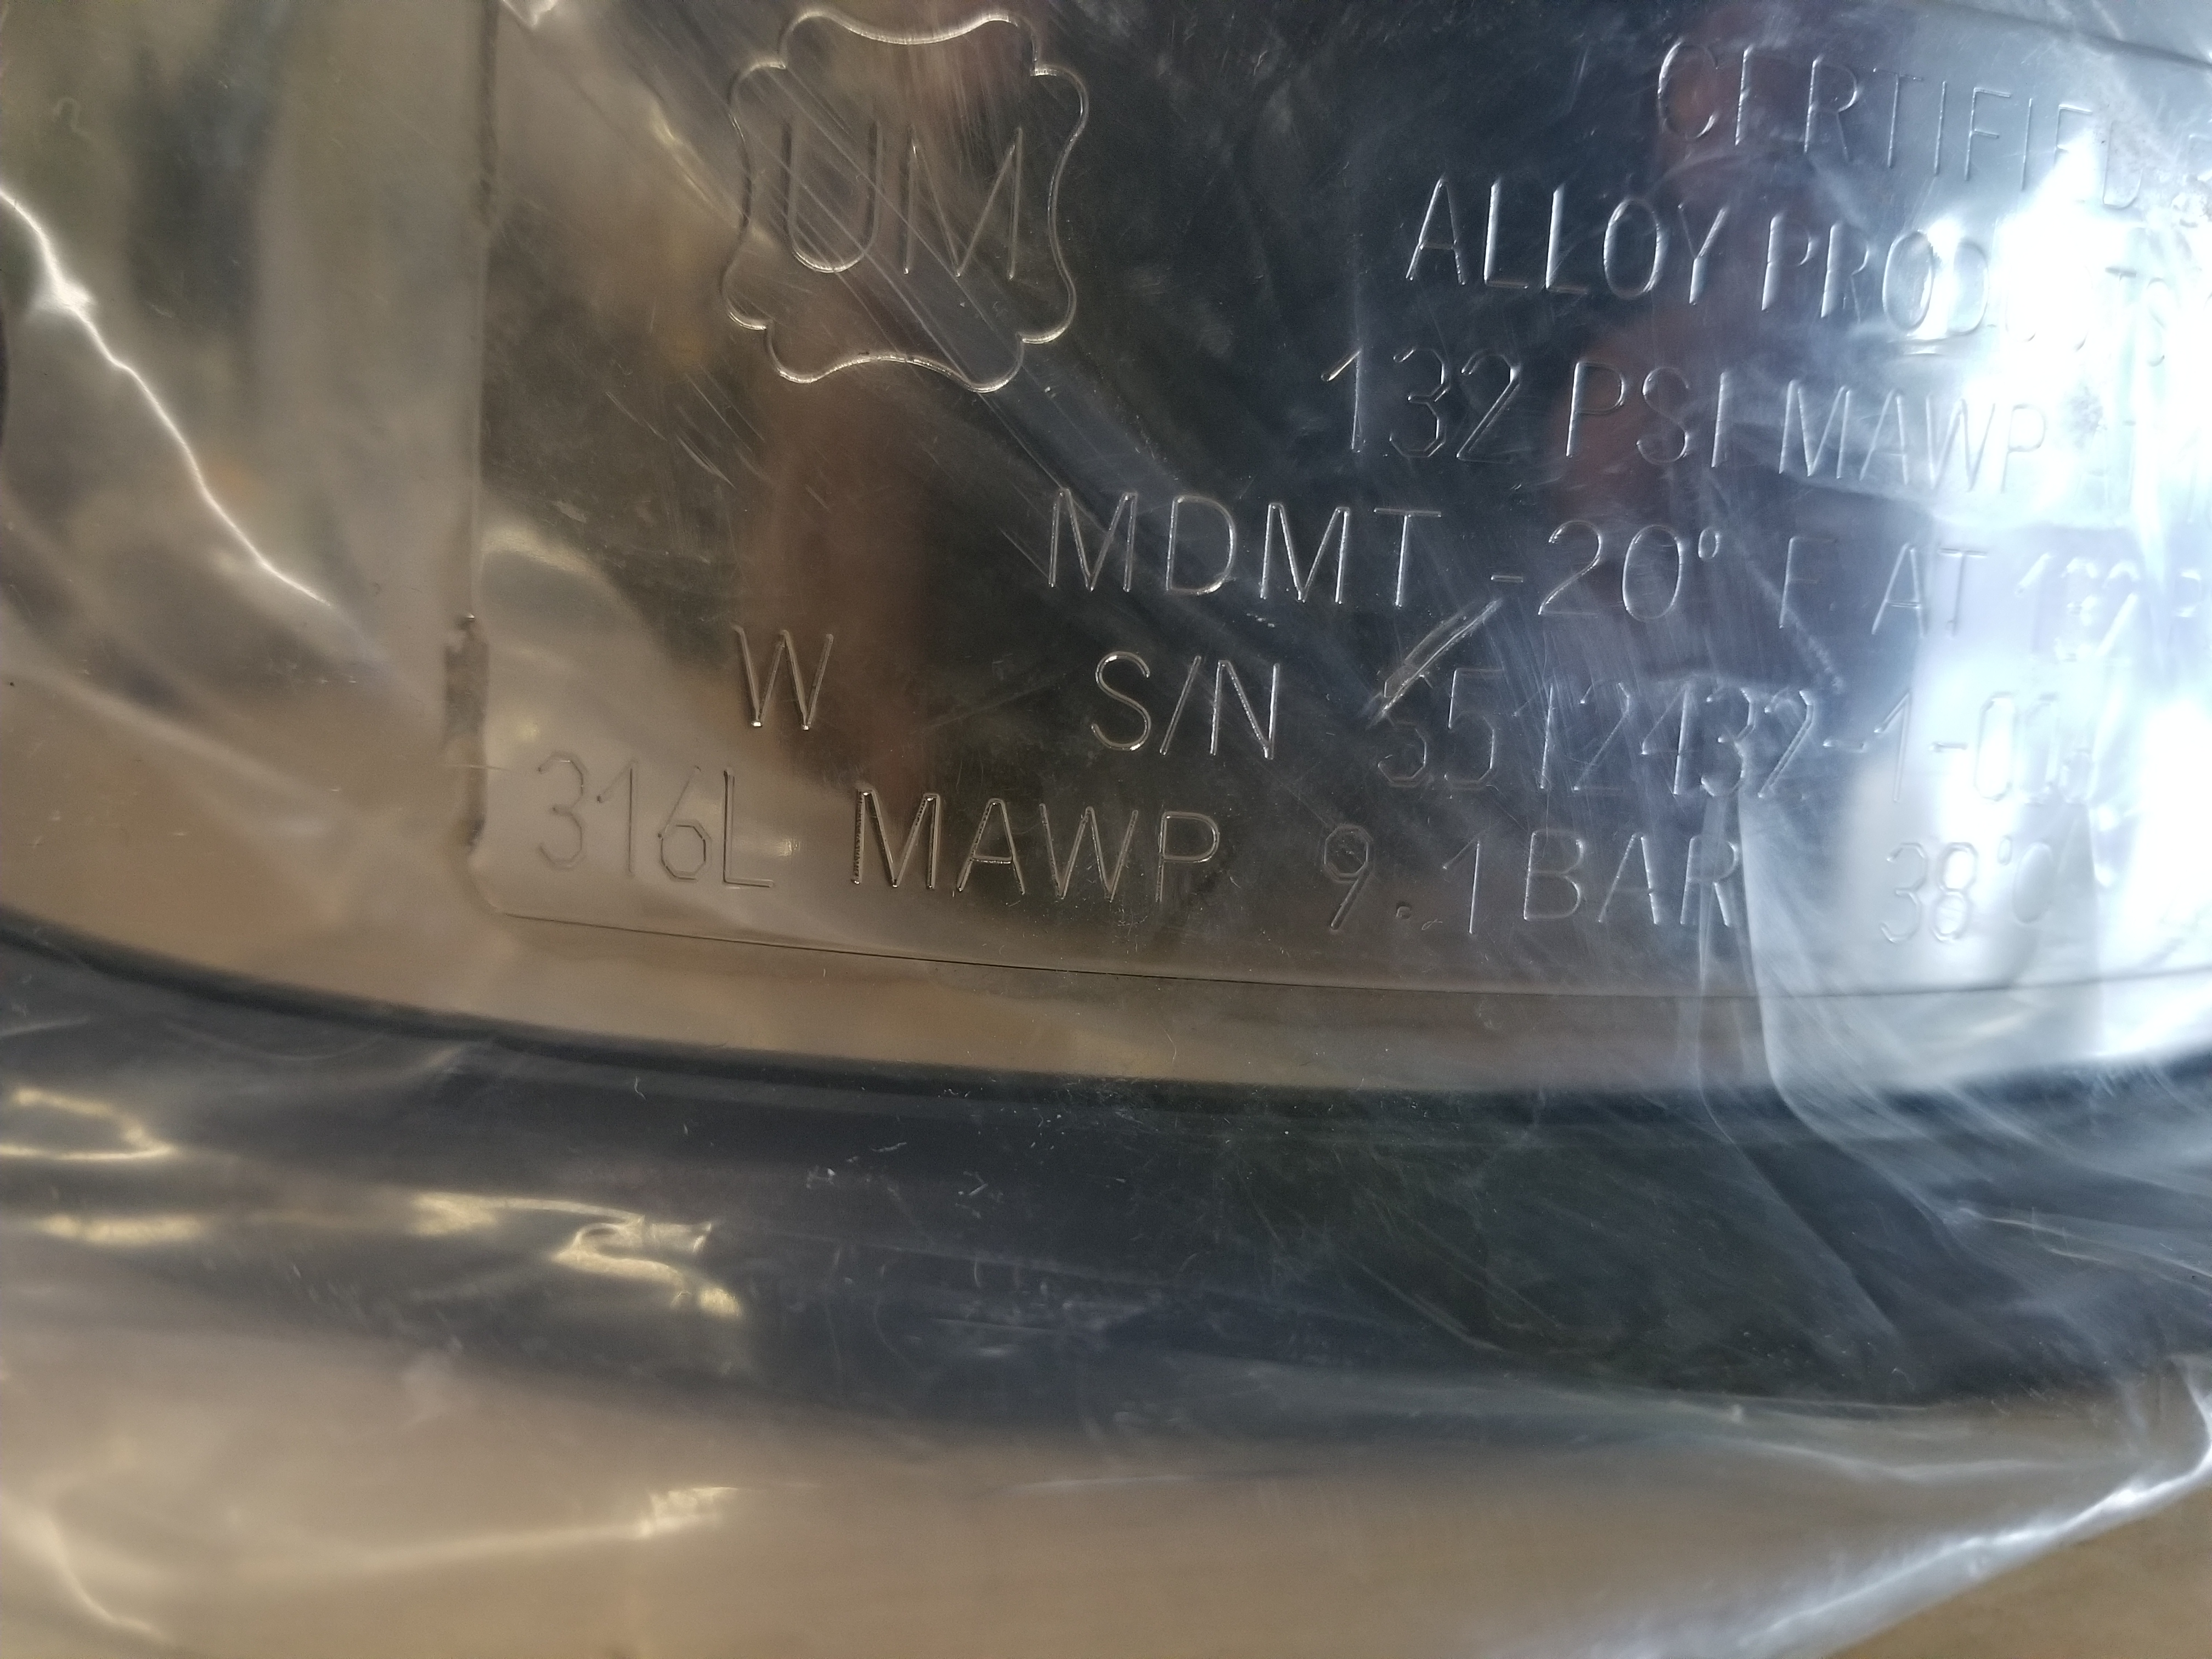 New Alloy Products 316L Stainless Steel Pressure Vessel - Image 9 of 12